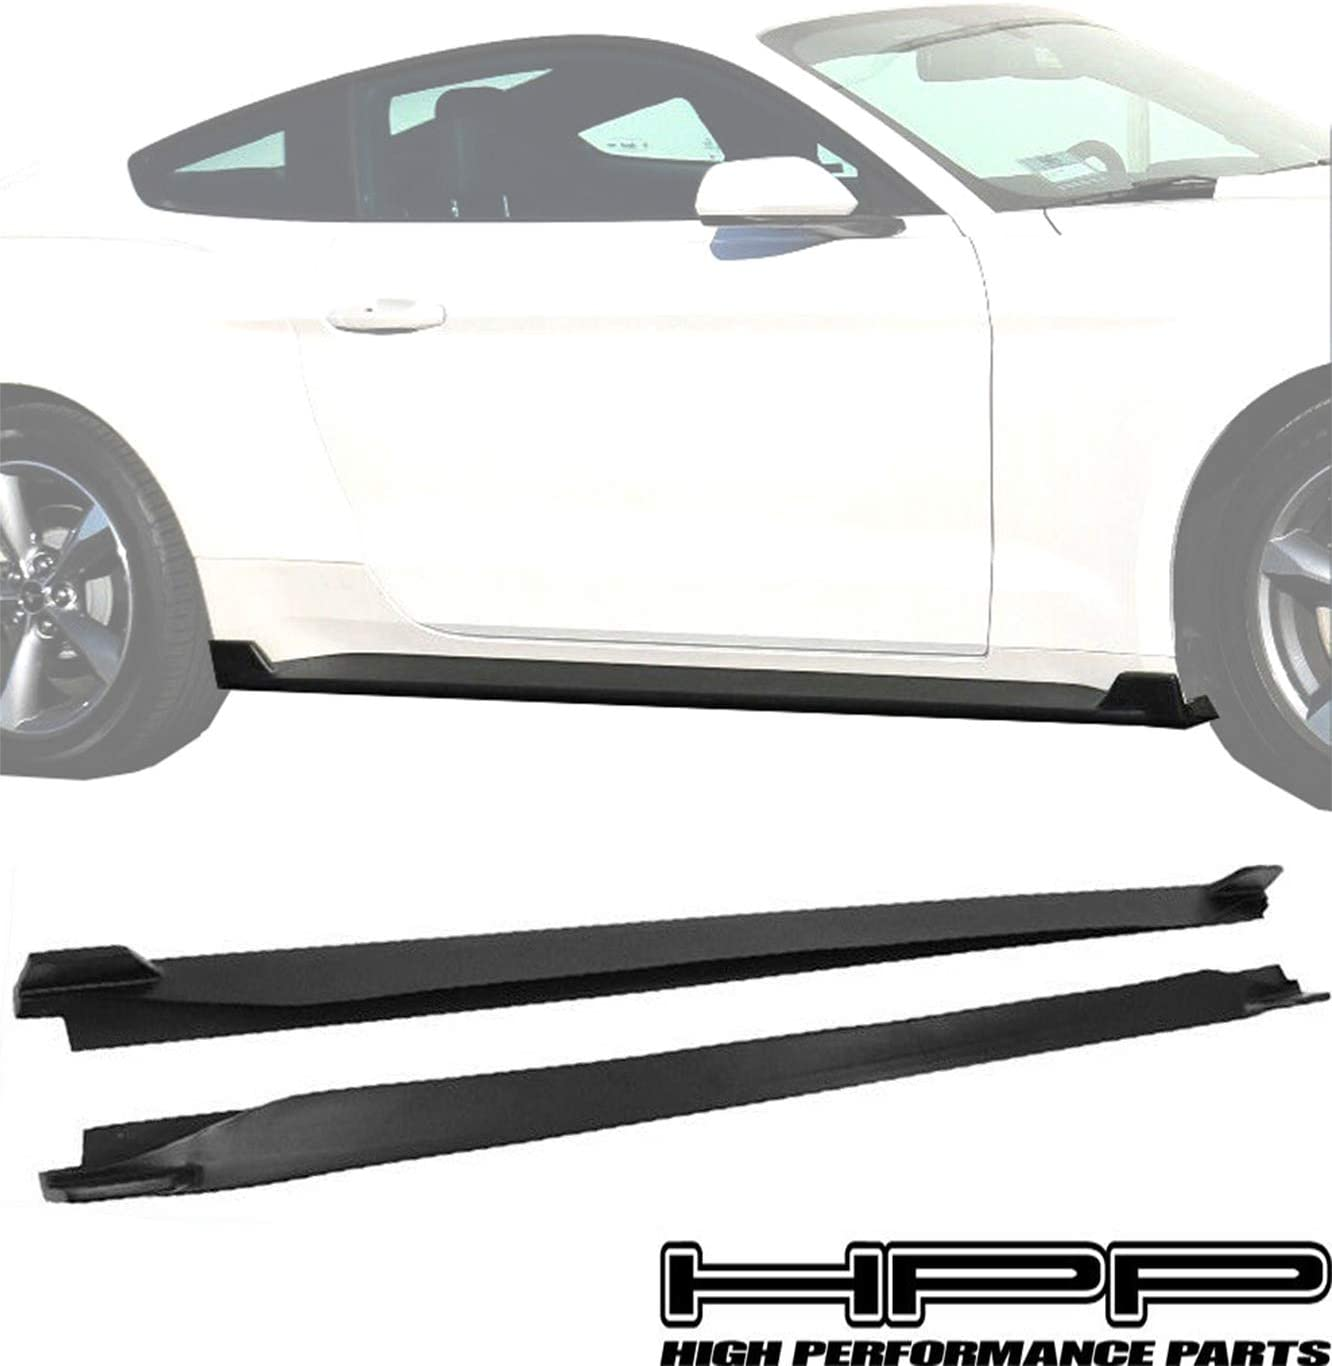 High Performance Part Side Skirts 2 Rocker Excellence Spl On Panels Fin Add List price